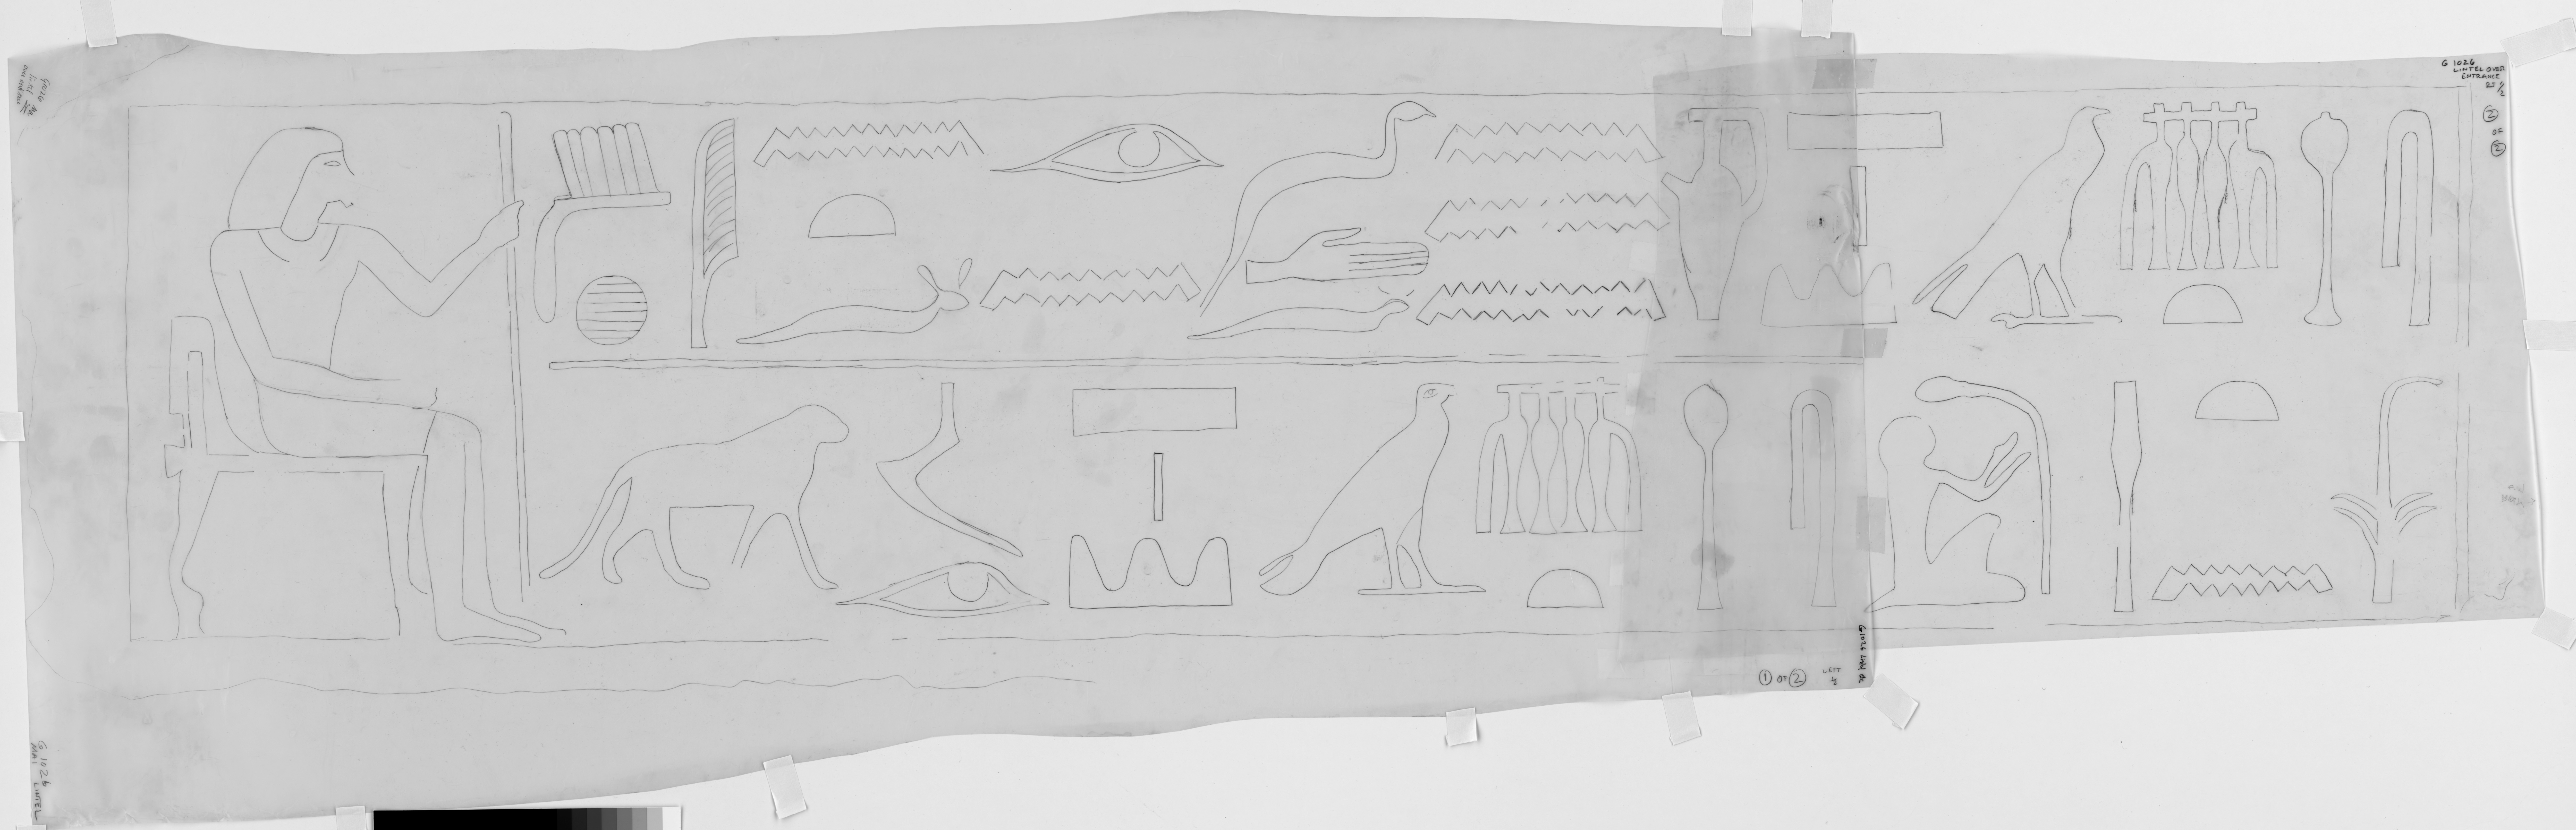 Drawings: G 1026: relief from interior corridor, offering room, lintel inscribed for Ma